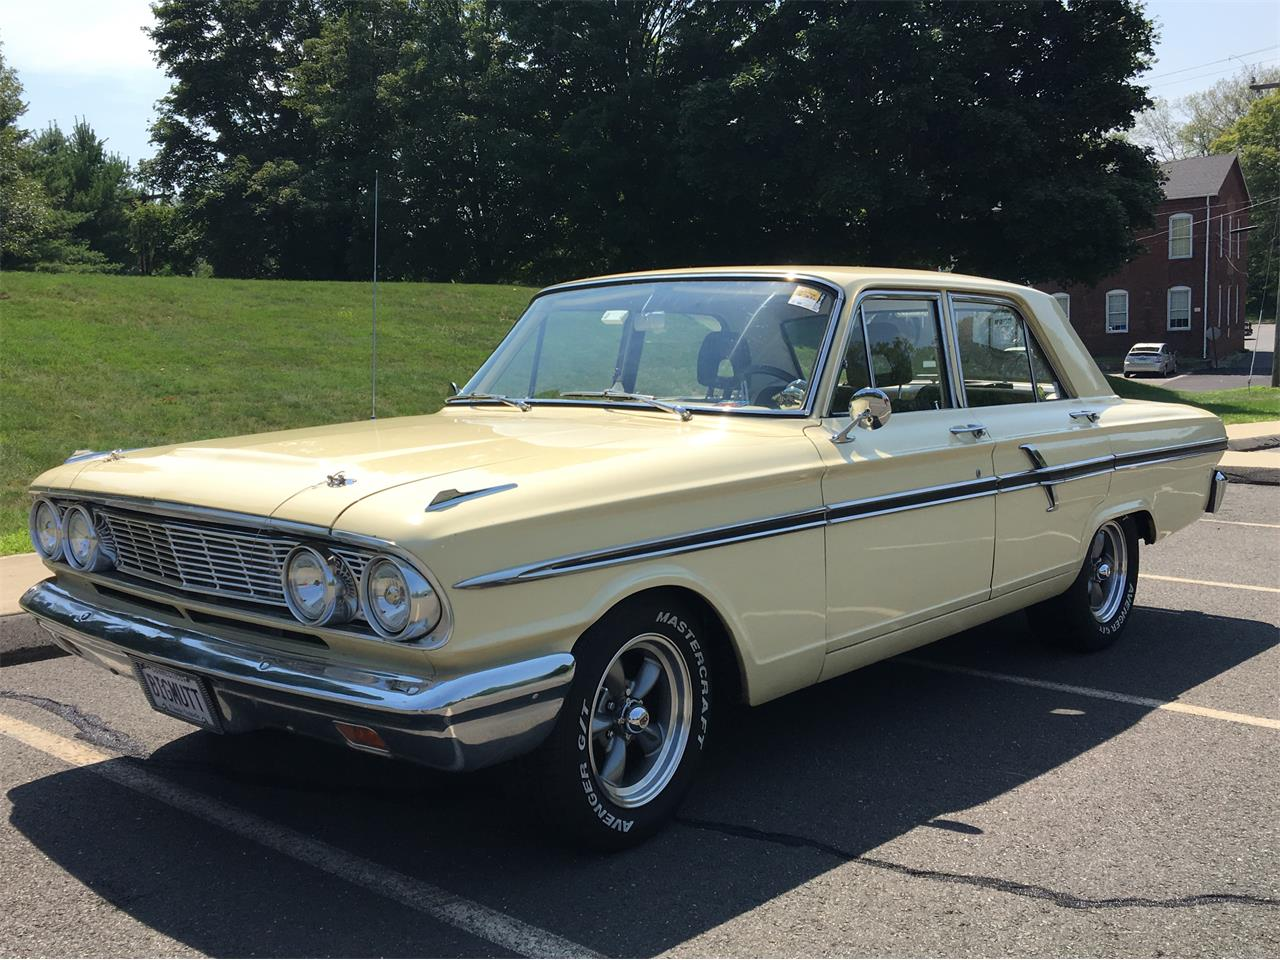 For Sale: 1964 Ford Fairlane 500 in Somers, Connecticut